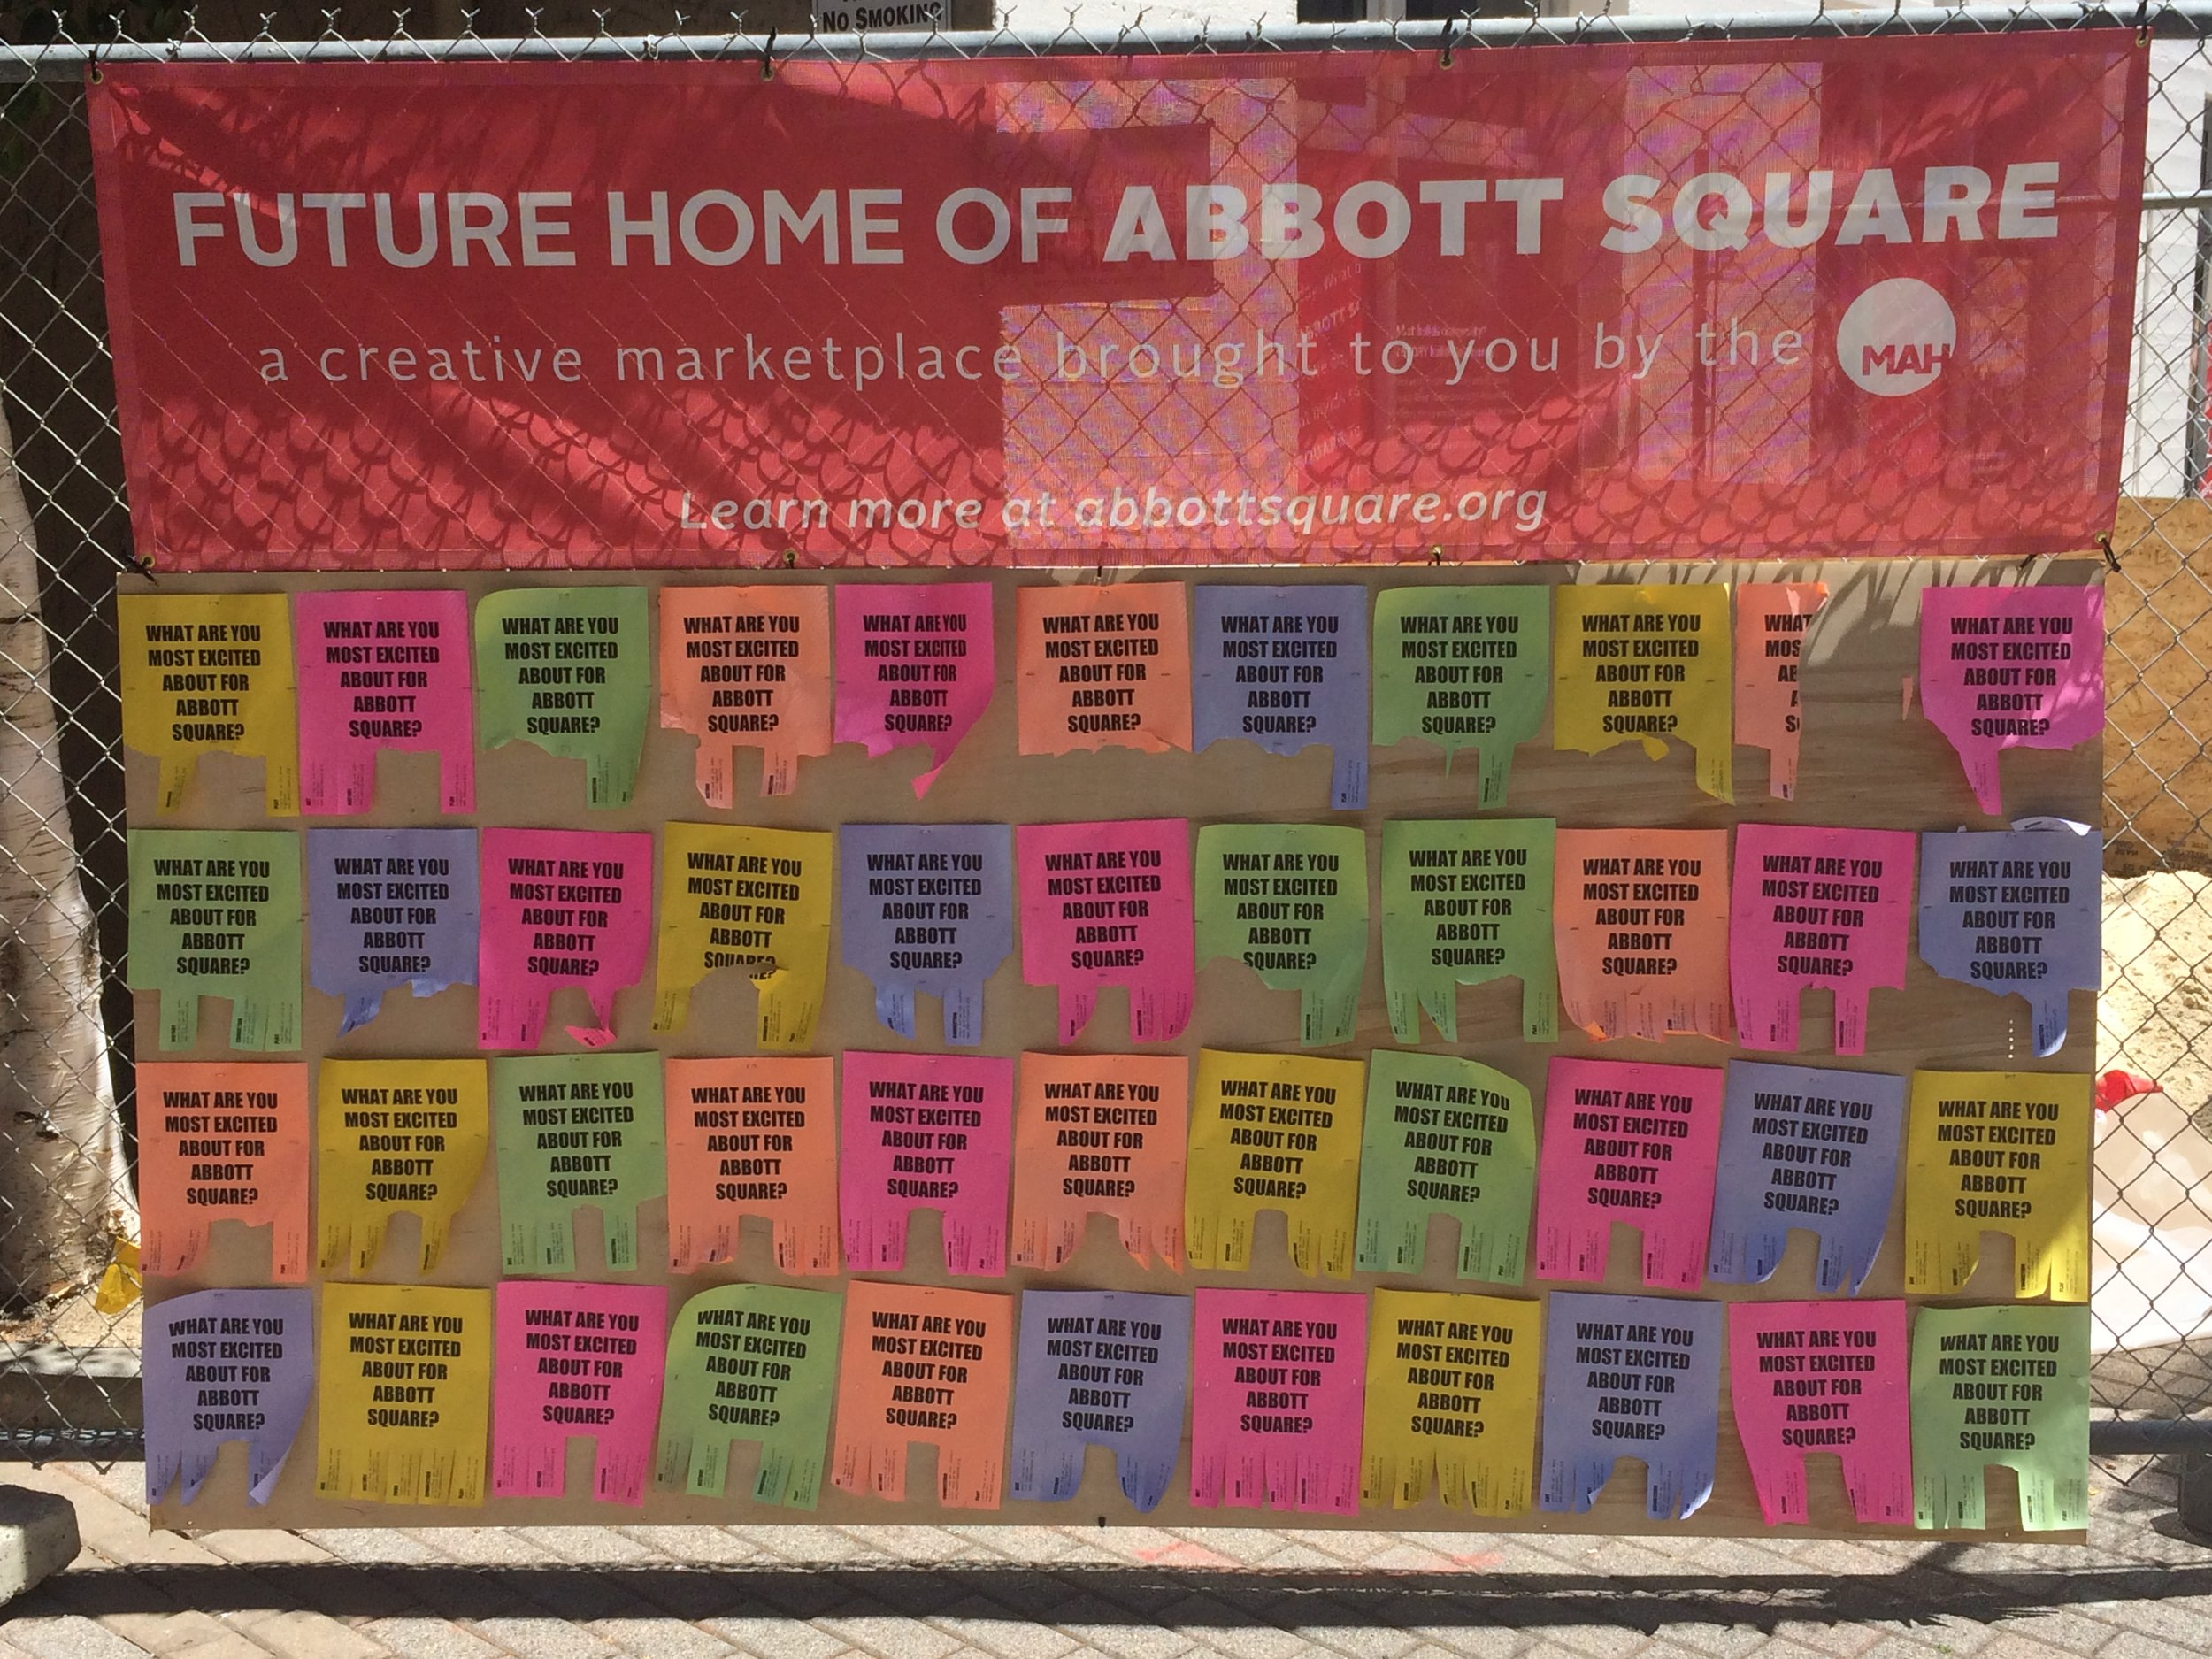 Banner promoting Abbott Square at the Santa Cruz Museum of Art & History.